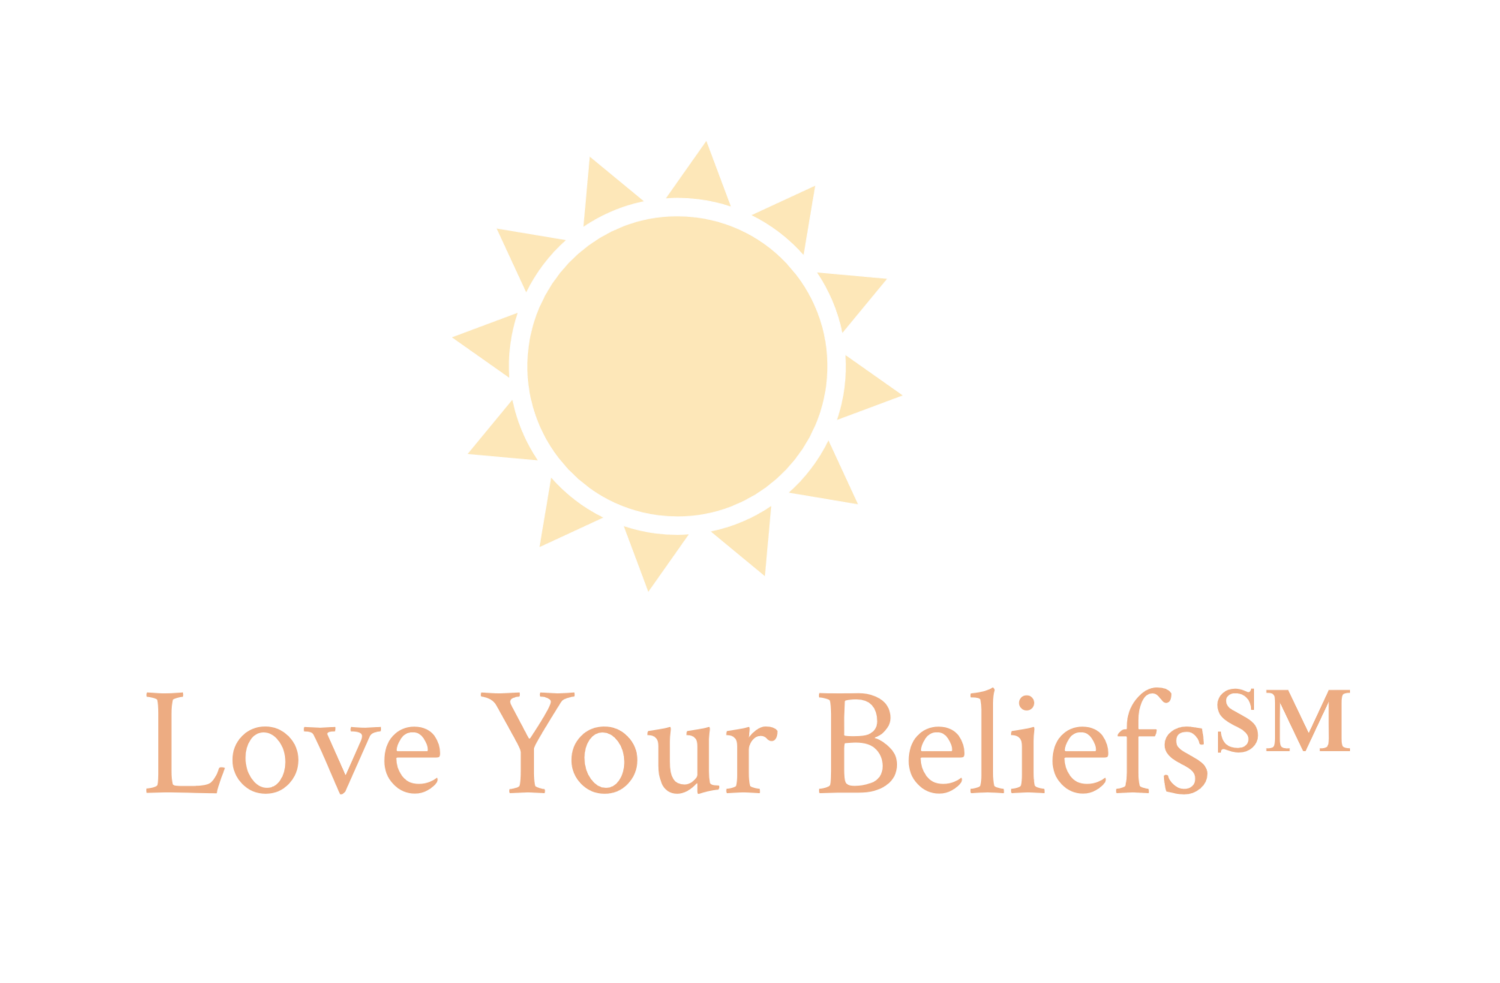 Love Your Beliefs